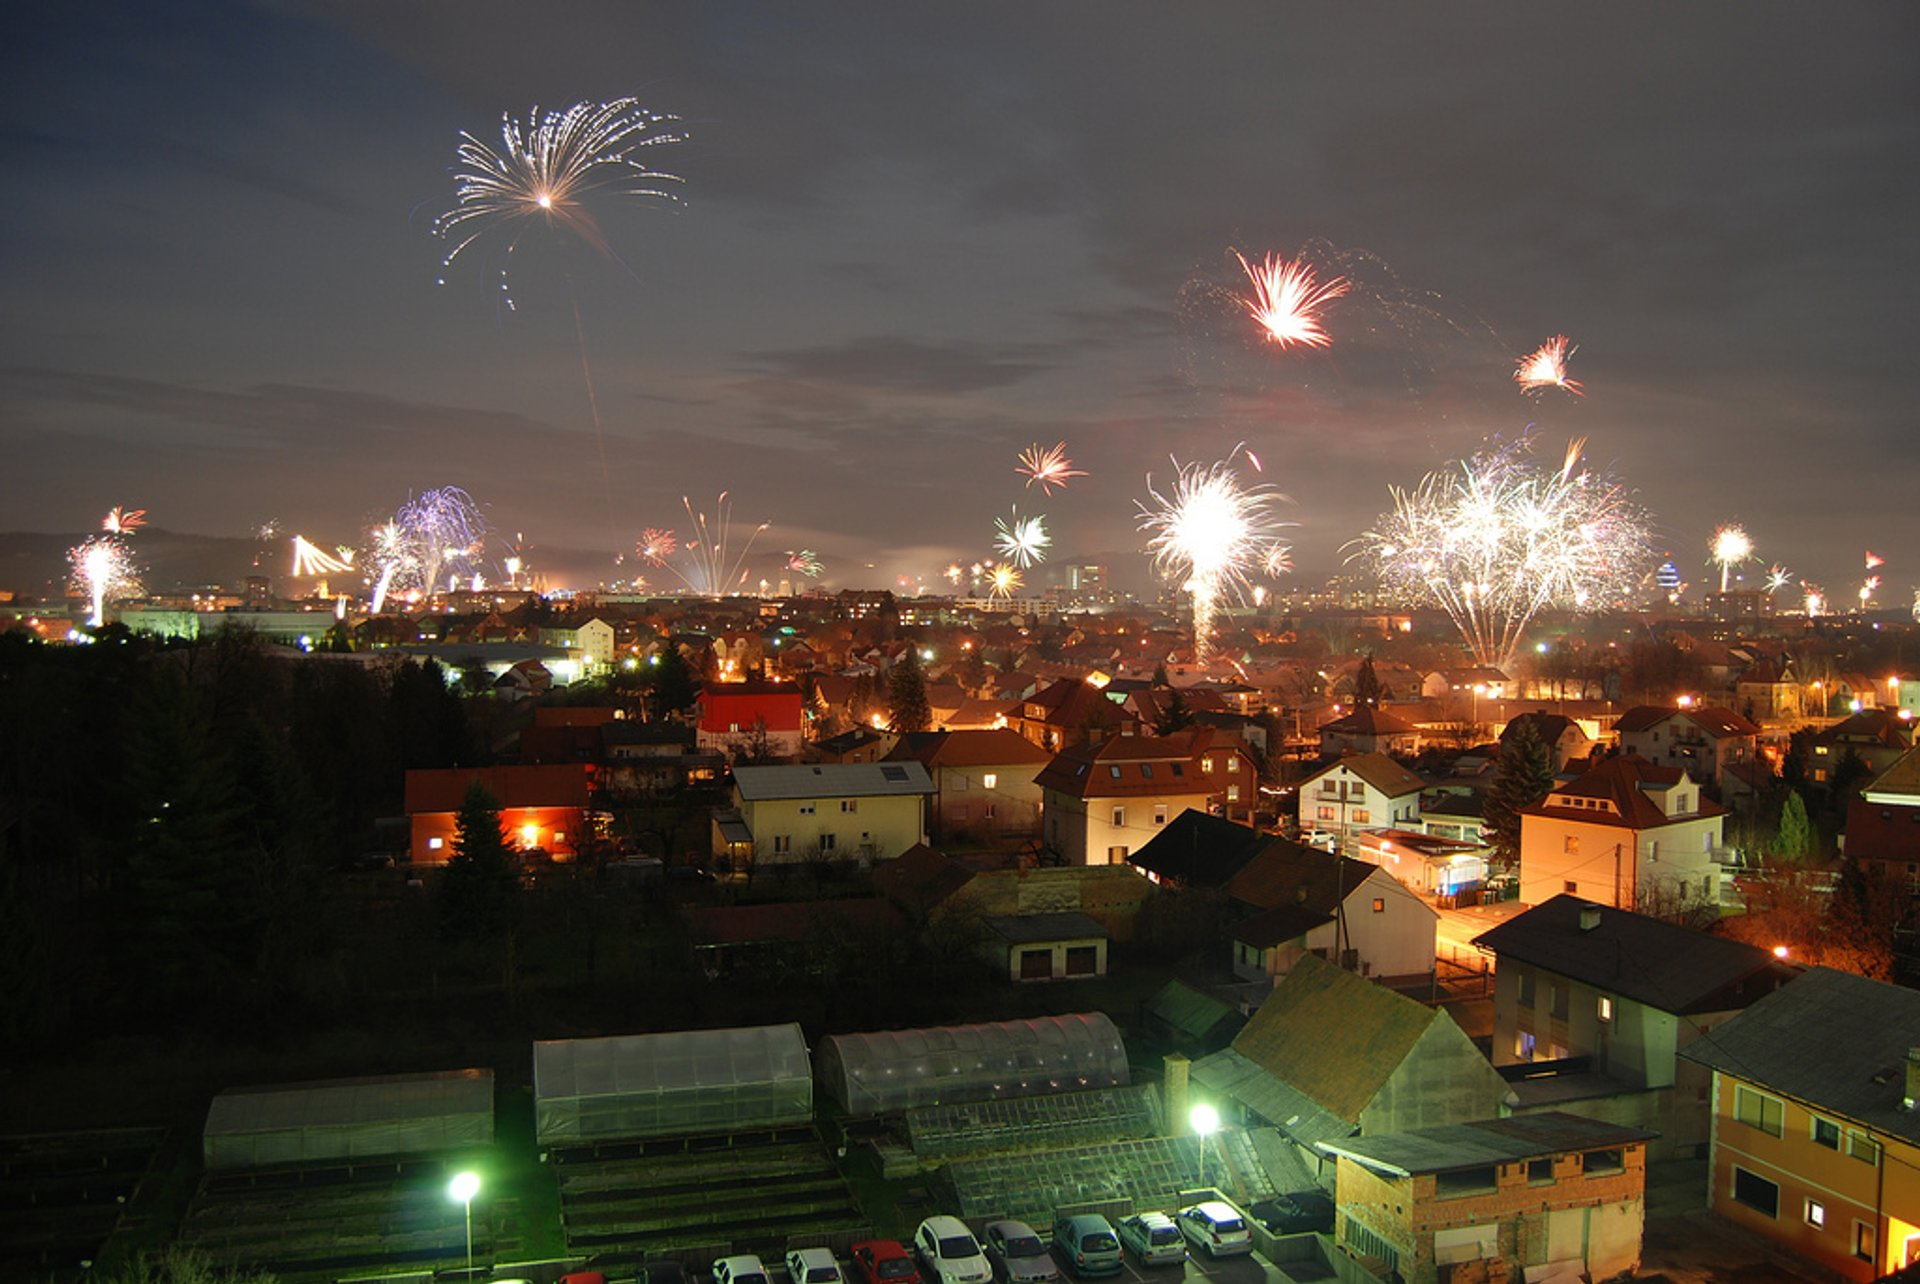 New Year's Eve in Slovenia 2020 - Best Time